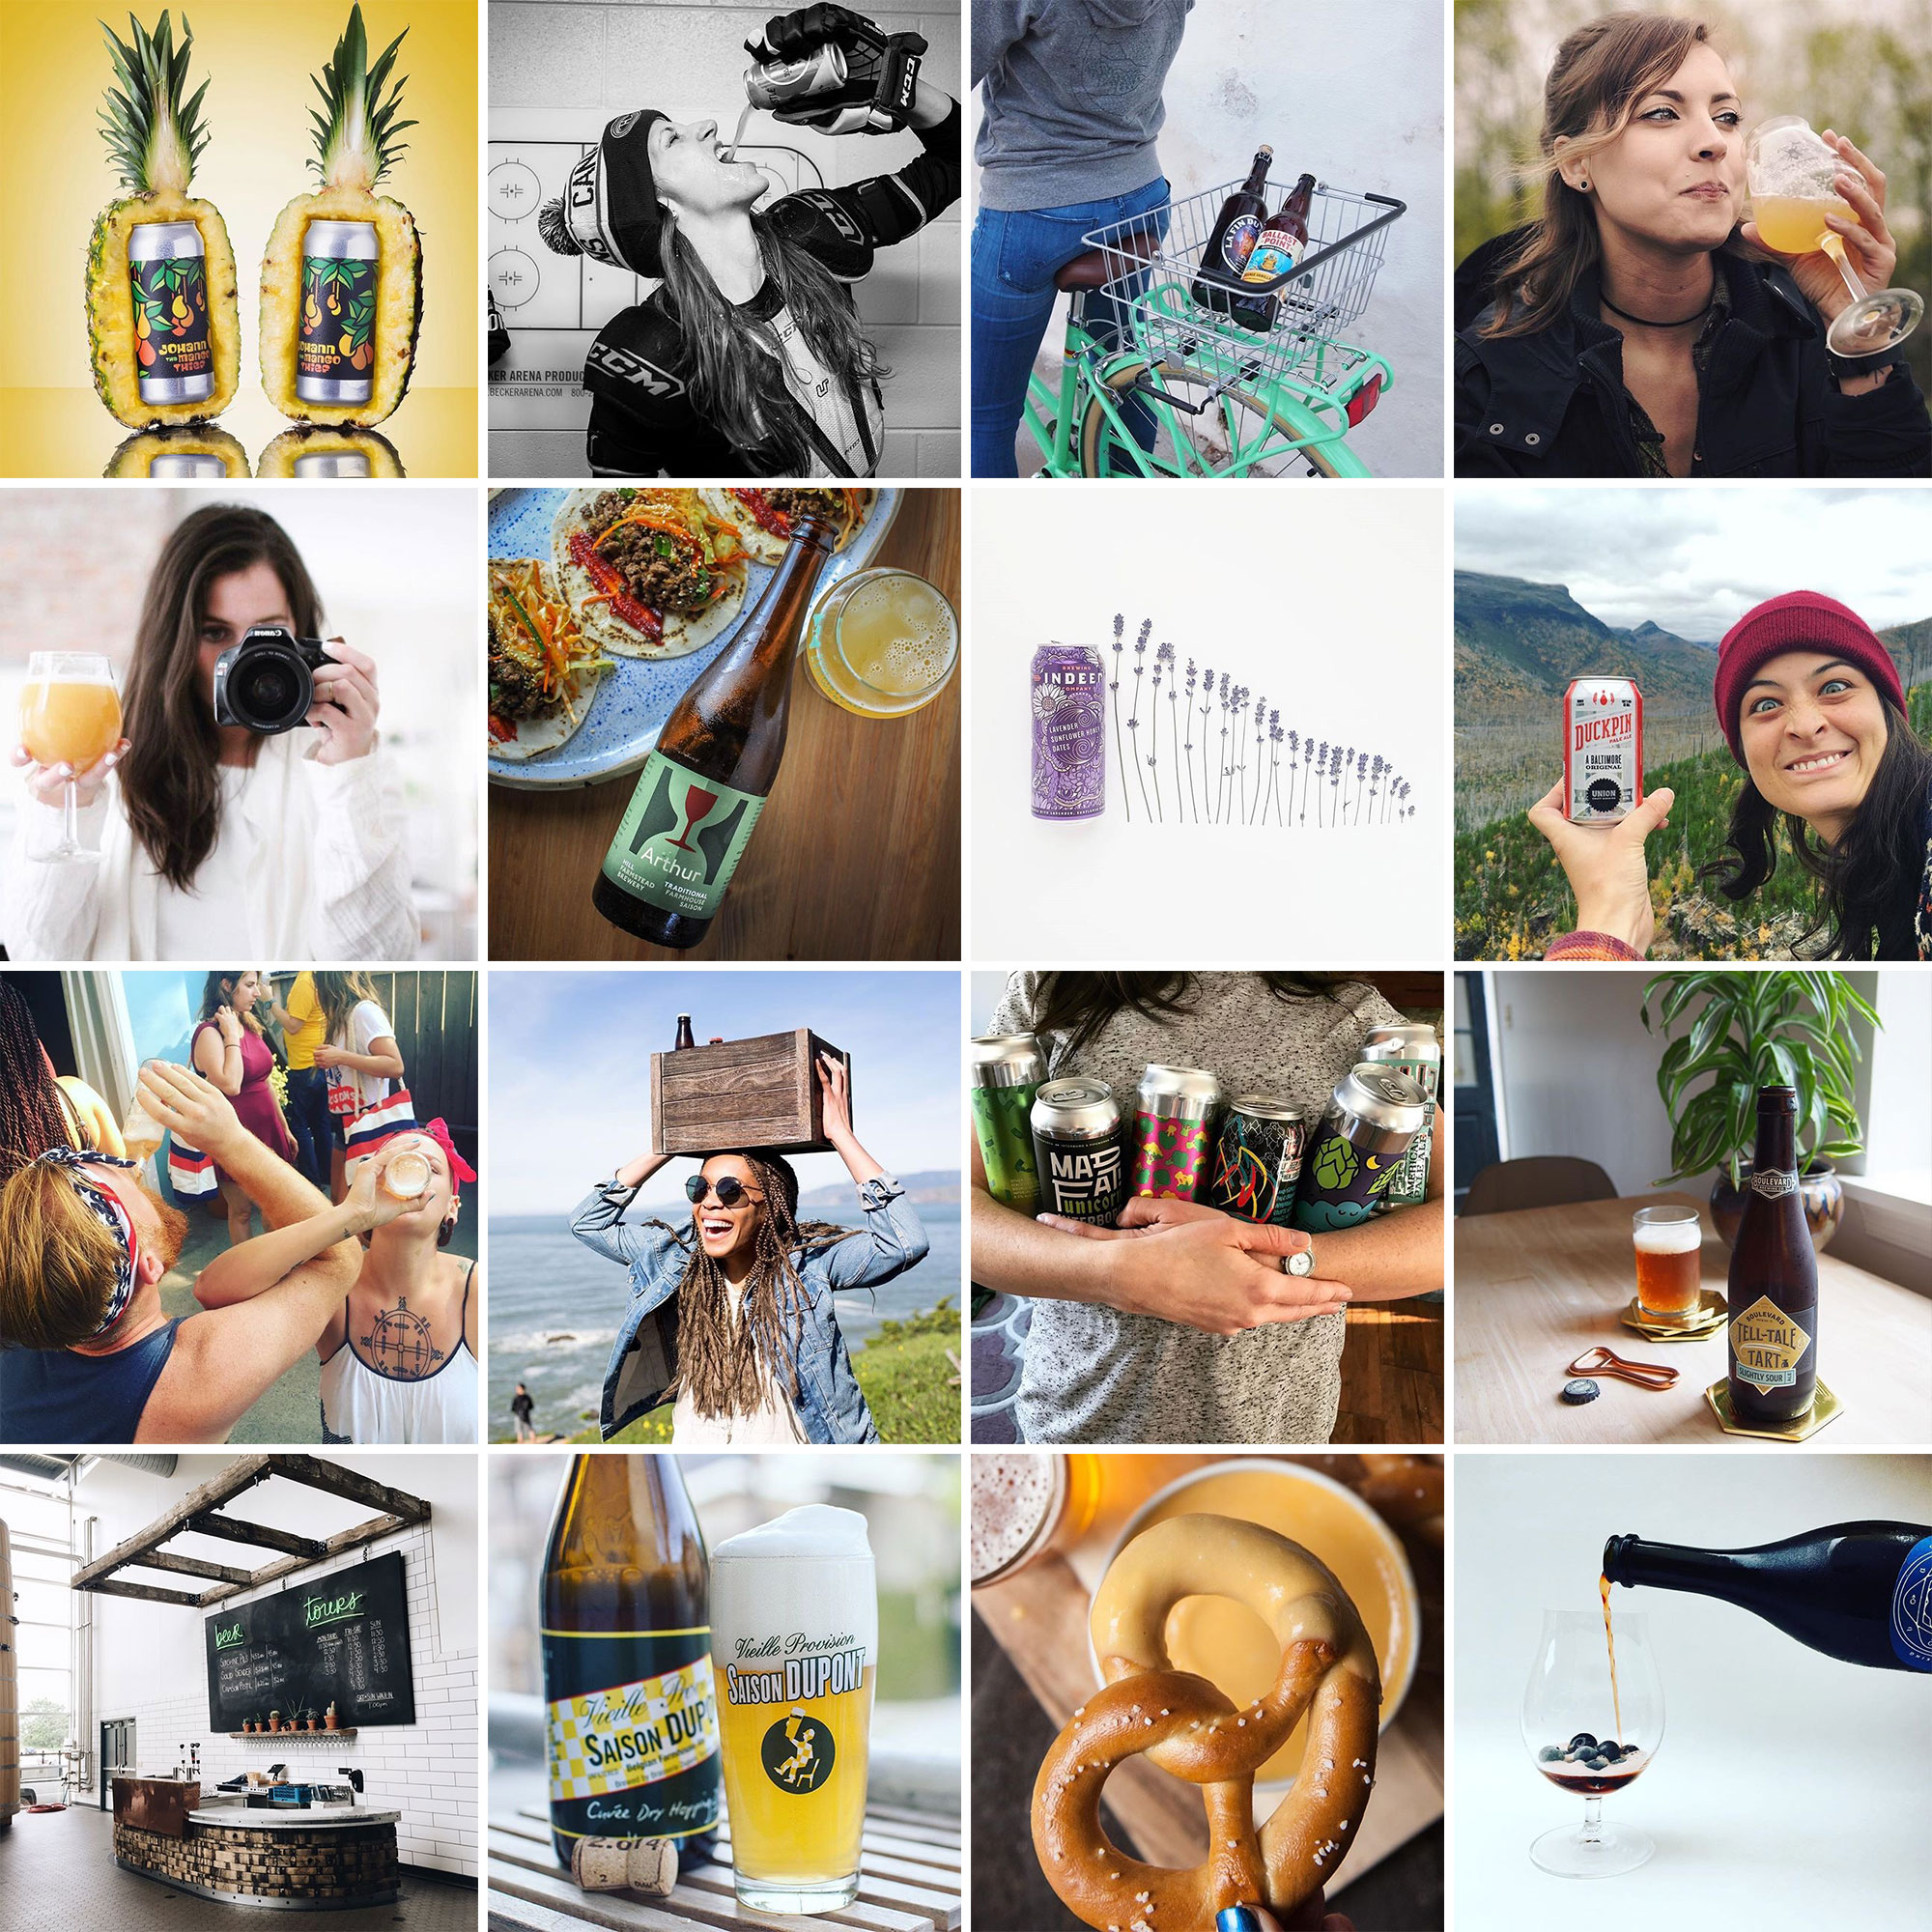 18 of the Best Female Beer Lovers on Instagram